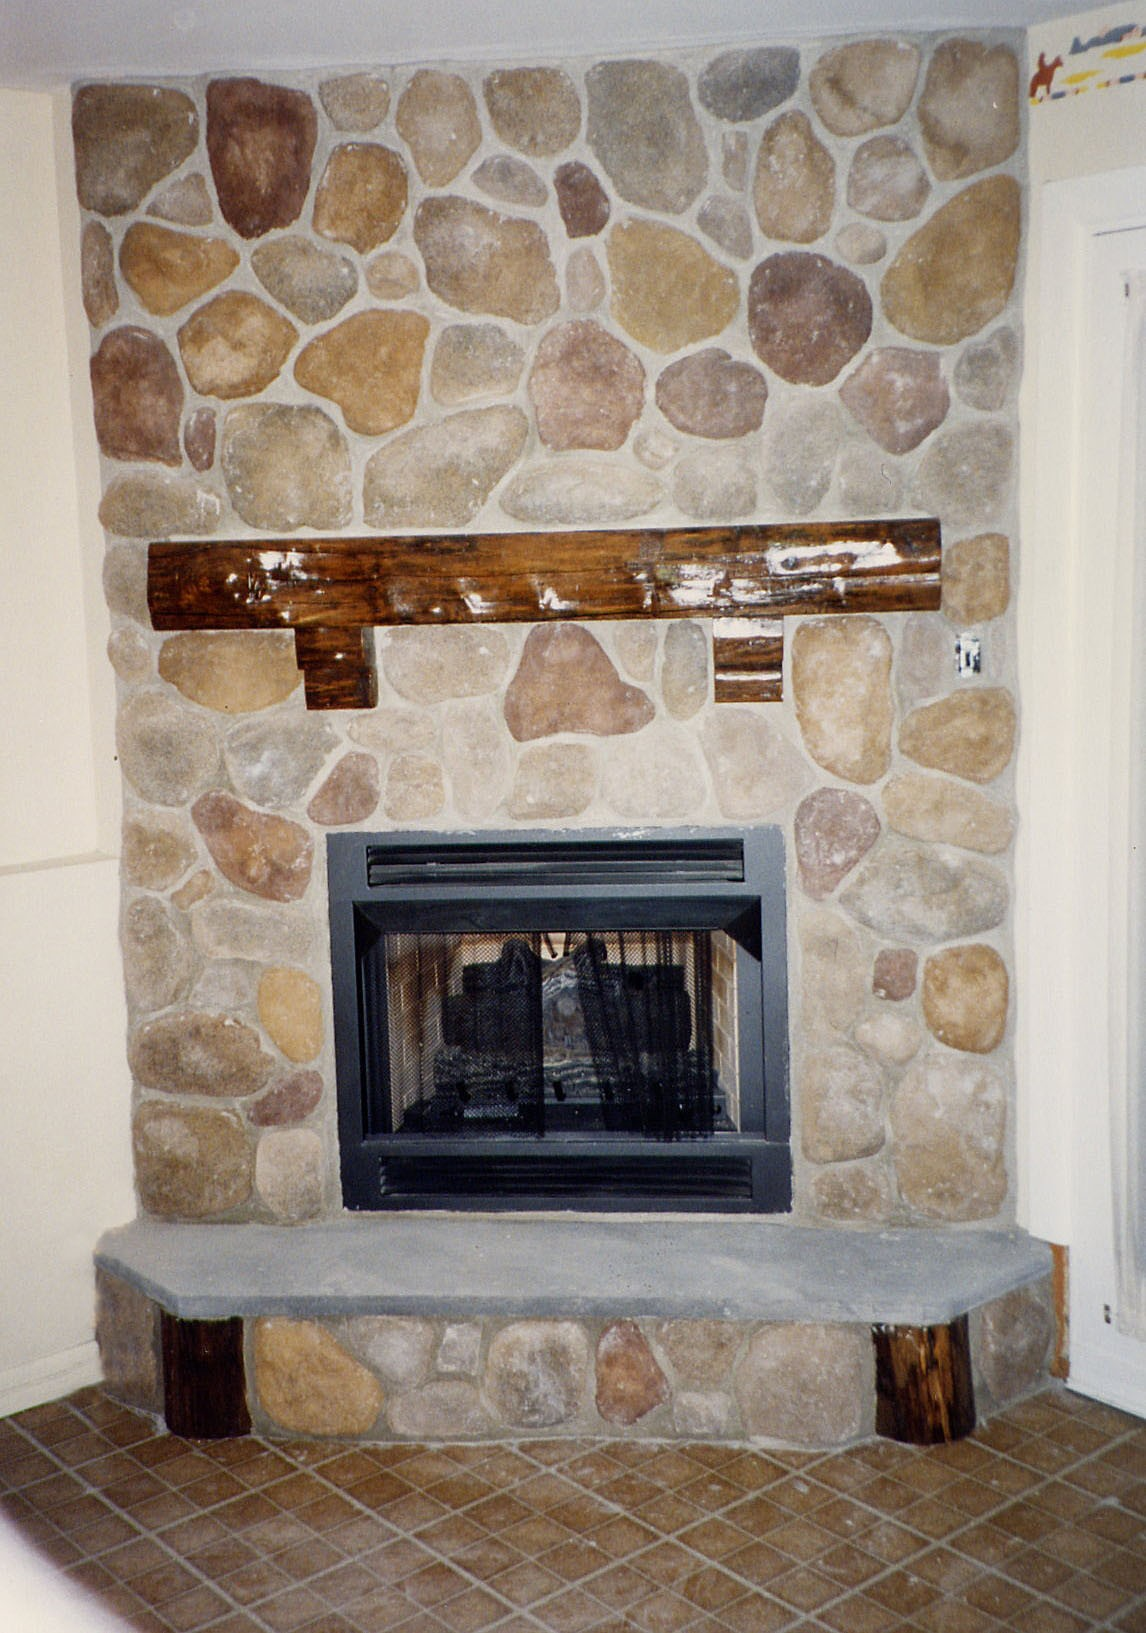 Fireplaces with glass rocks